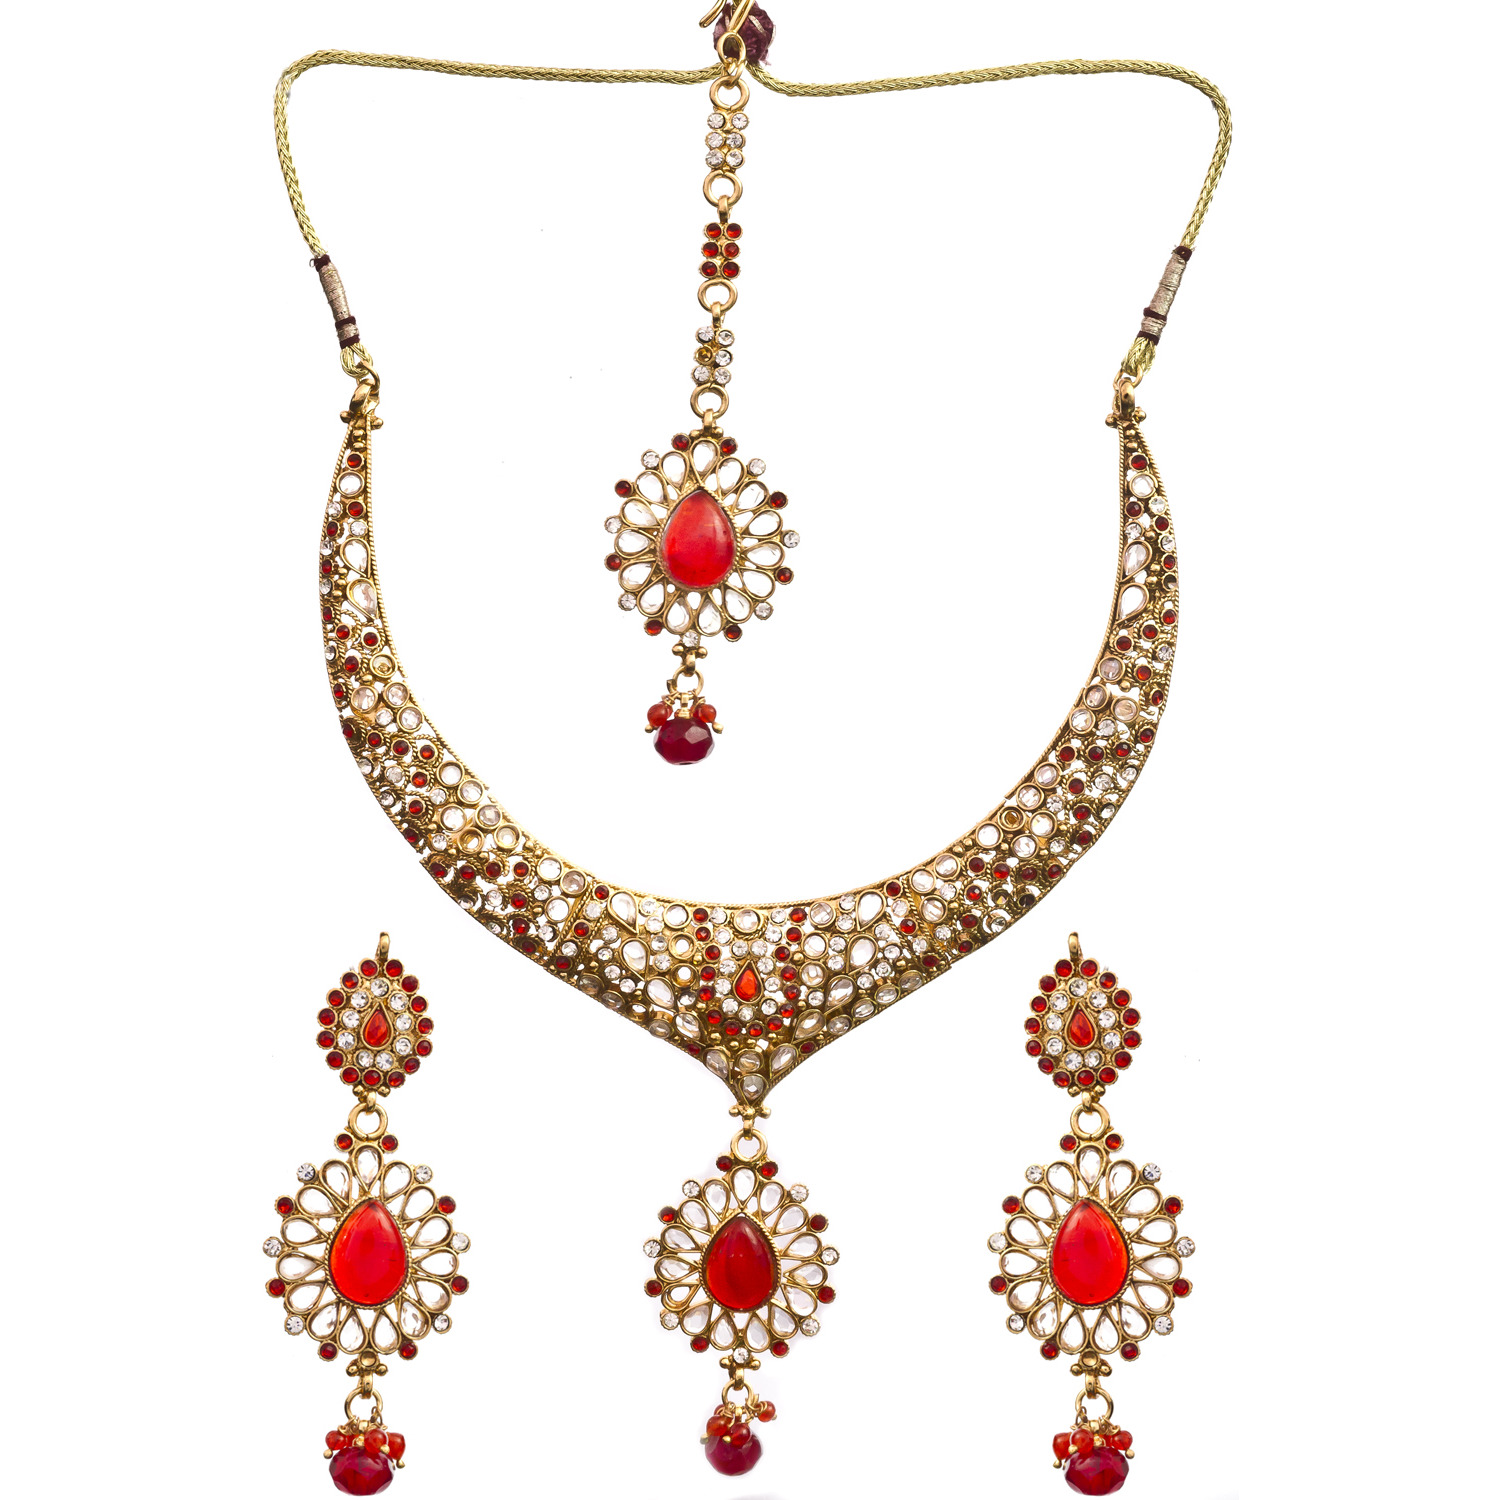 Red-Color Polki Necklace Set with Mang Tiks